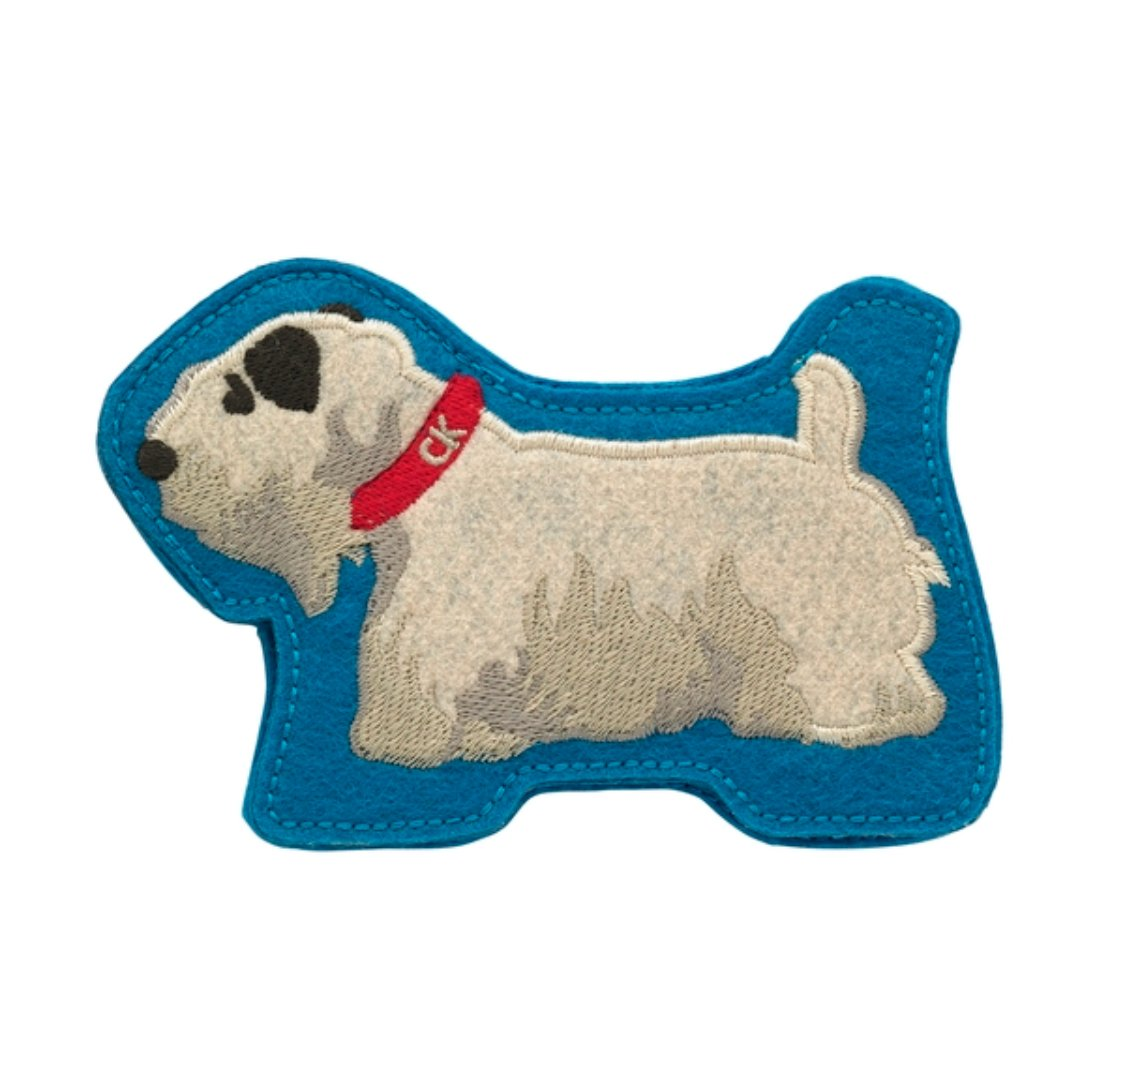 CATH KIDSTON Billie Dog Sewing Case and Needles NEW in Packet